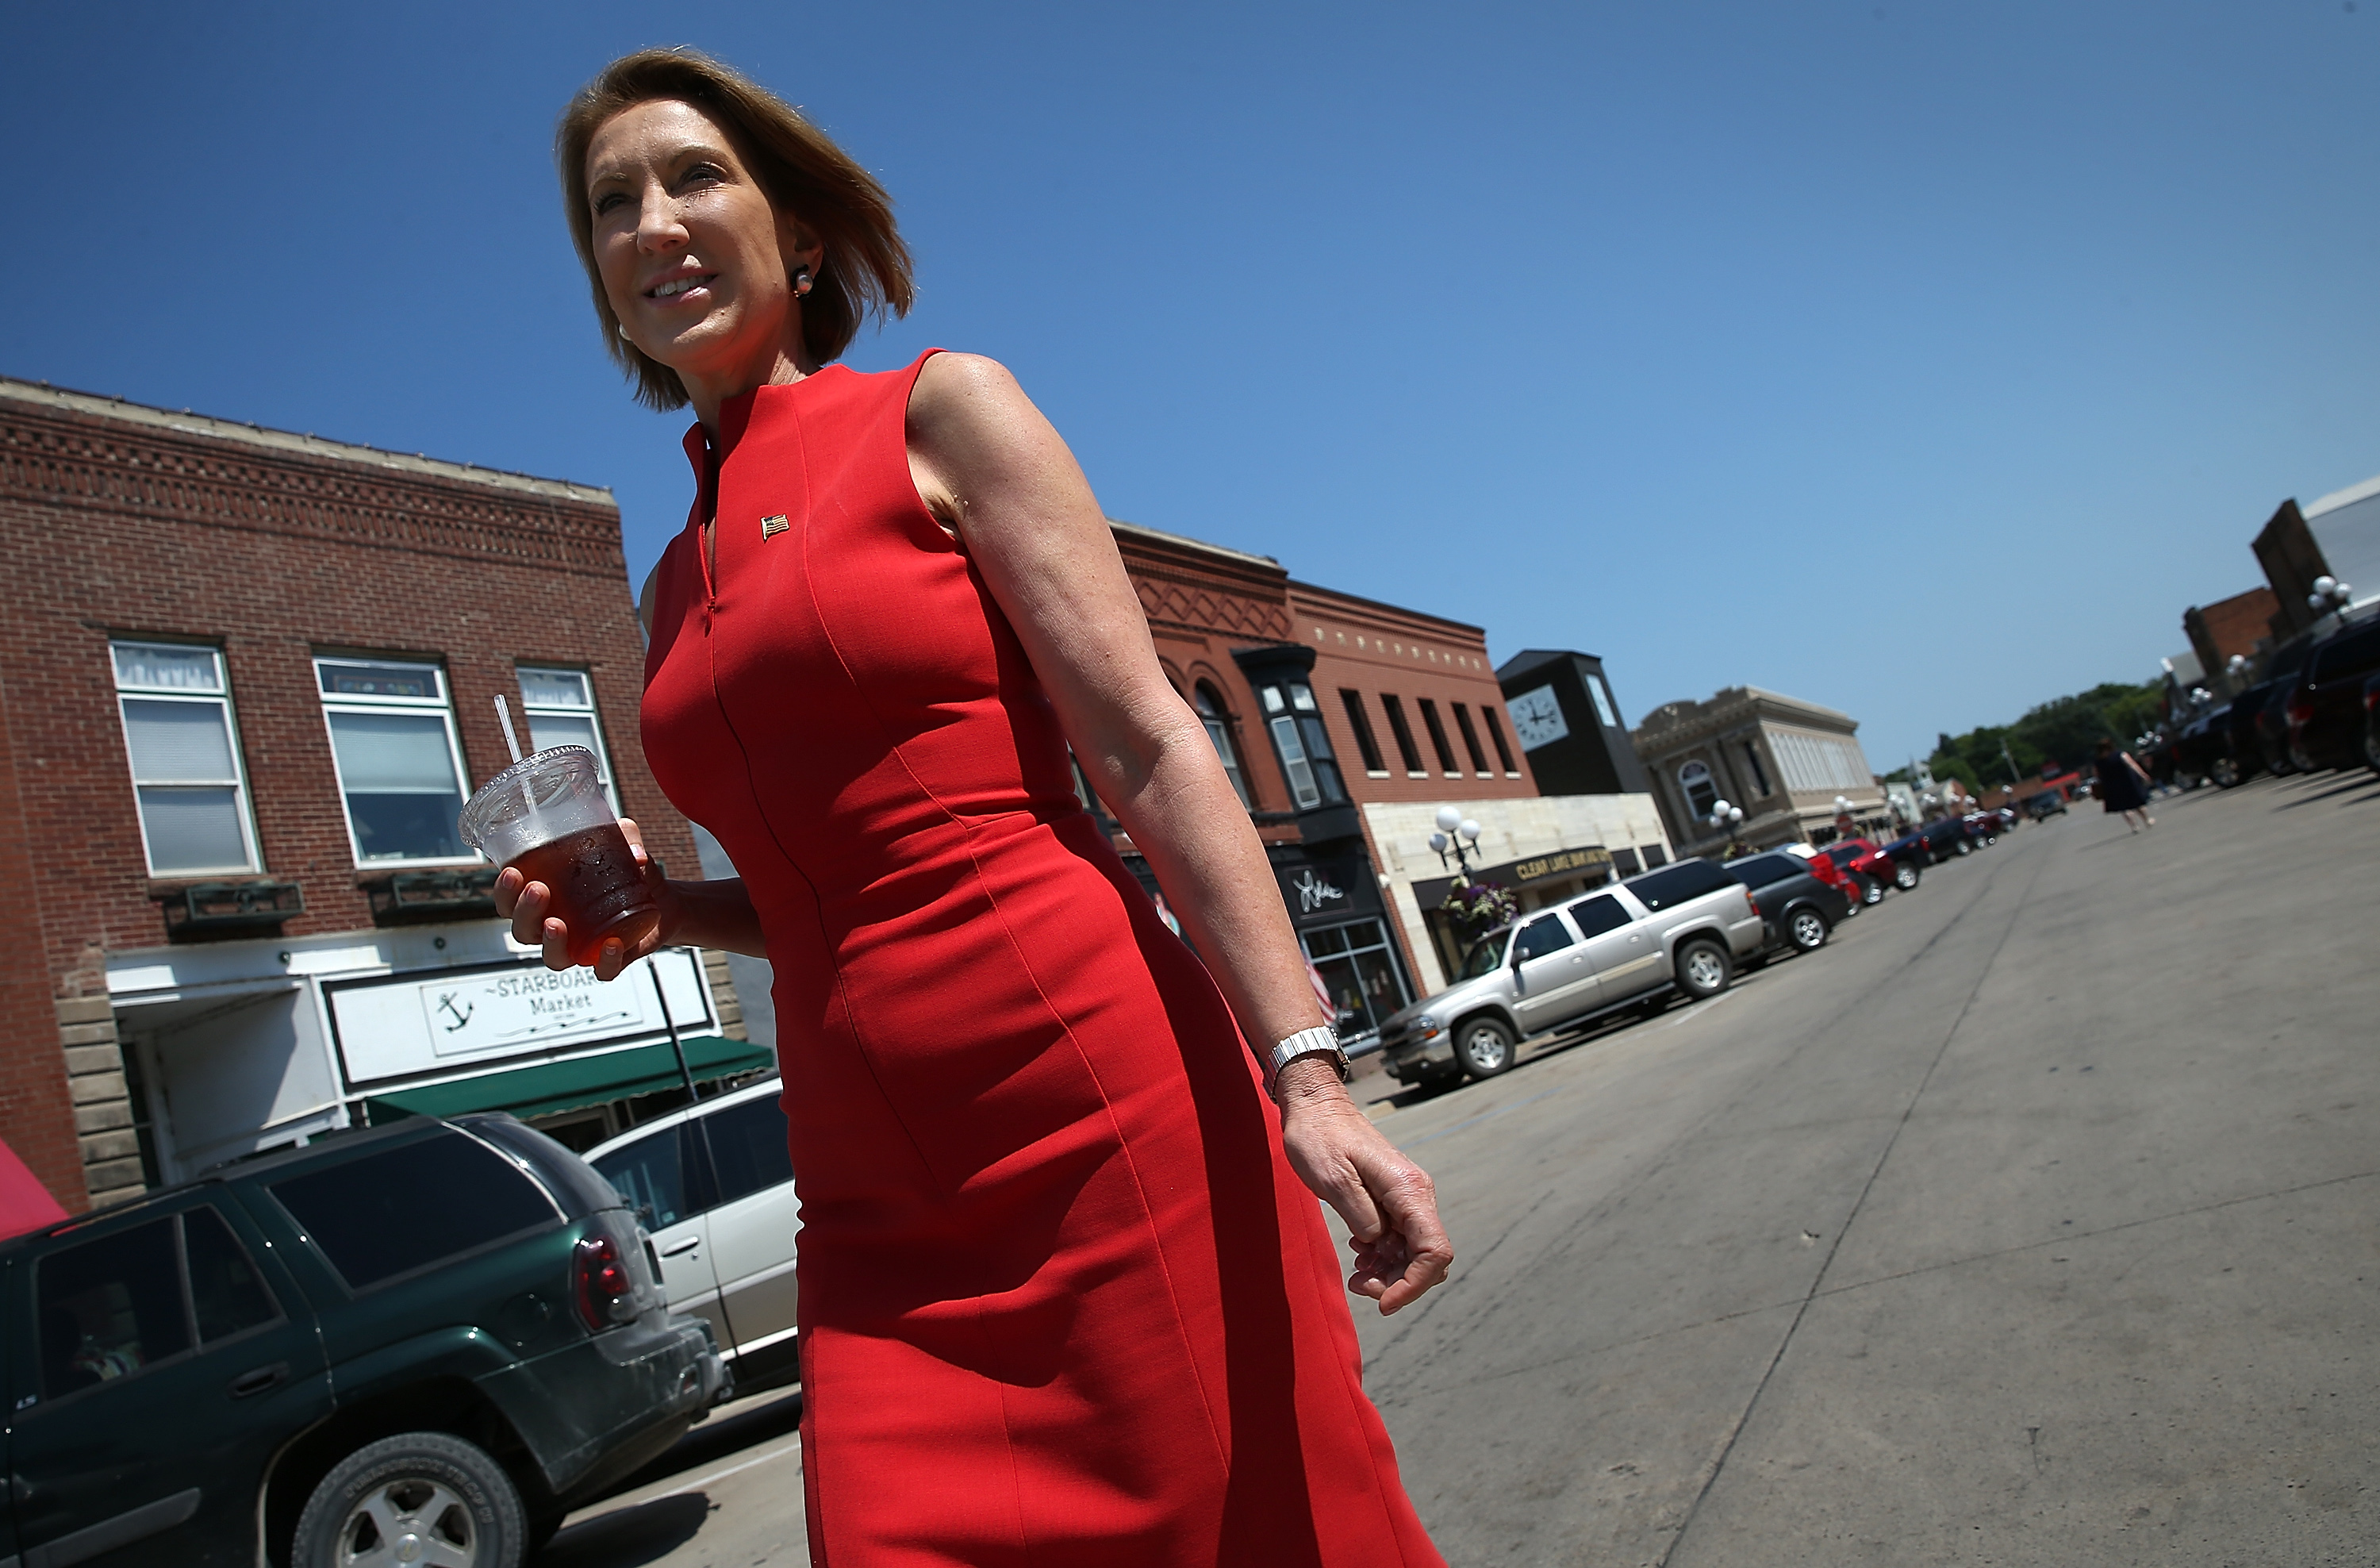 Republican presidential candidate Carly Fiorina walks down Main Street after having lunch at the Starboard Market August 14, 2015, in Clear Lake, Iowa.